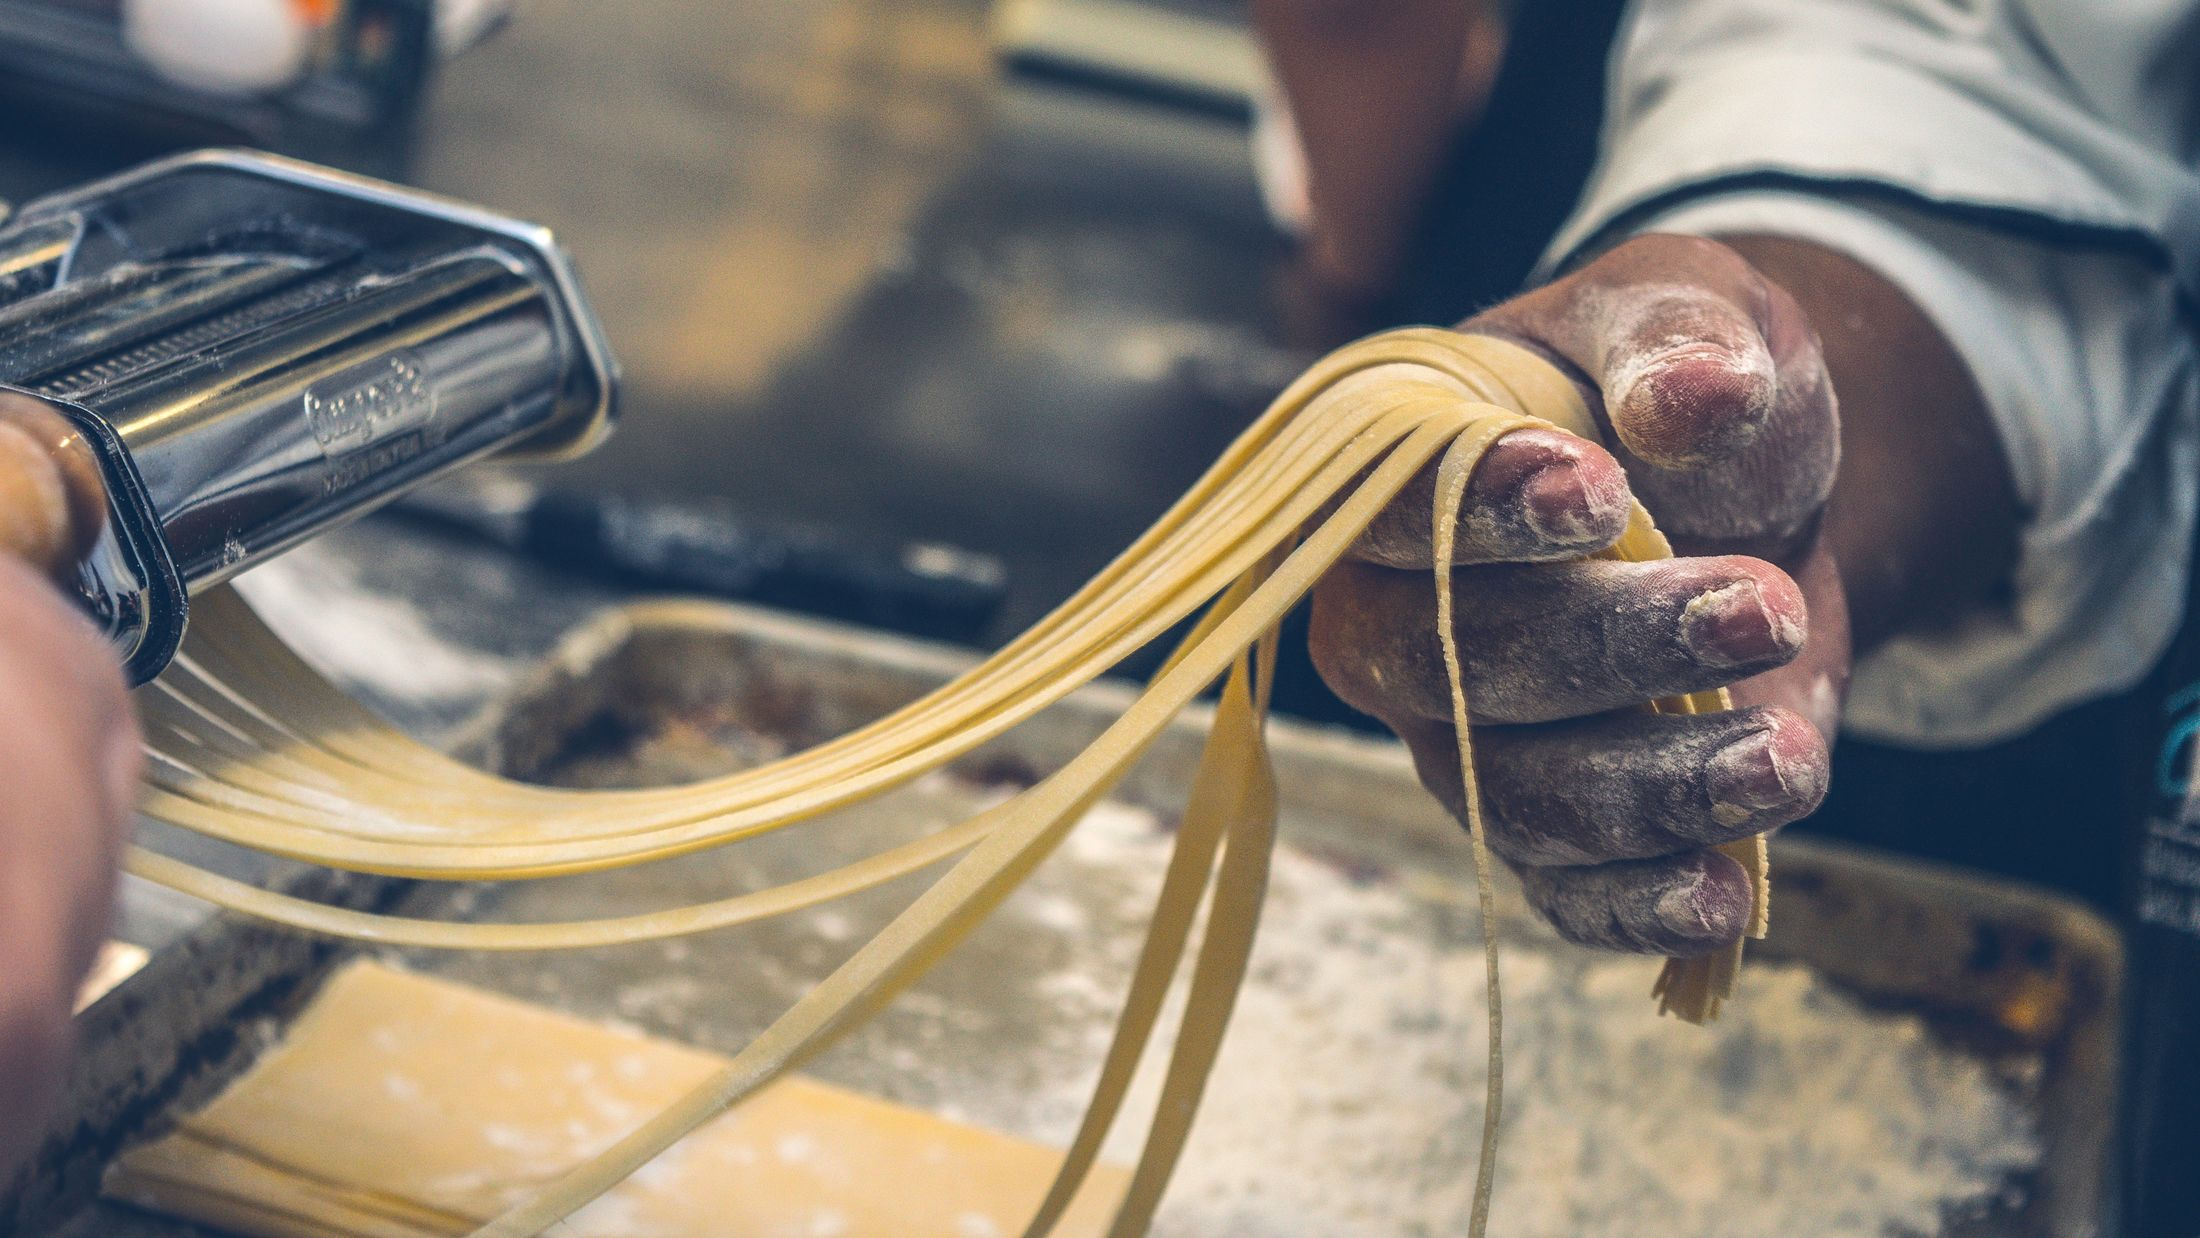 085051 Pasta Making_Italy_Pixabay_no credit req_1082230-Hybris